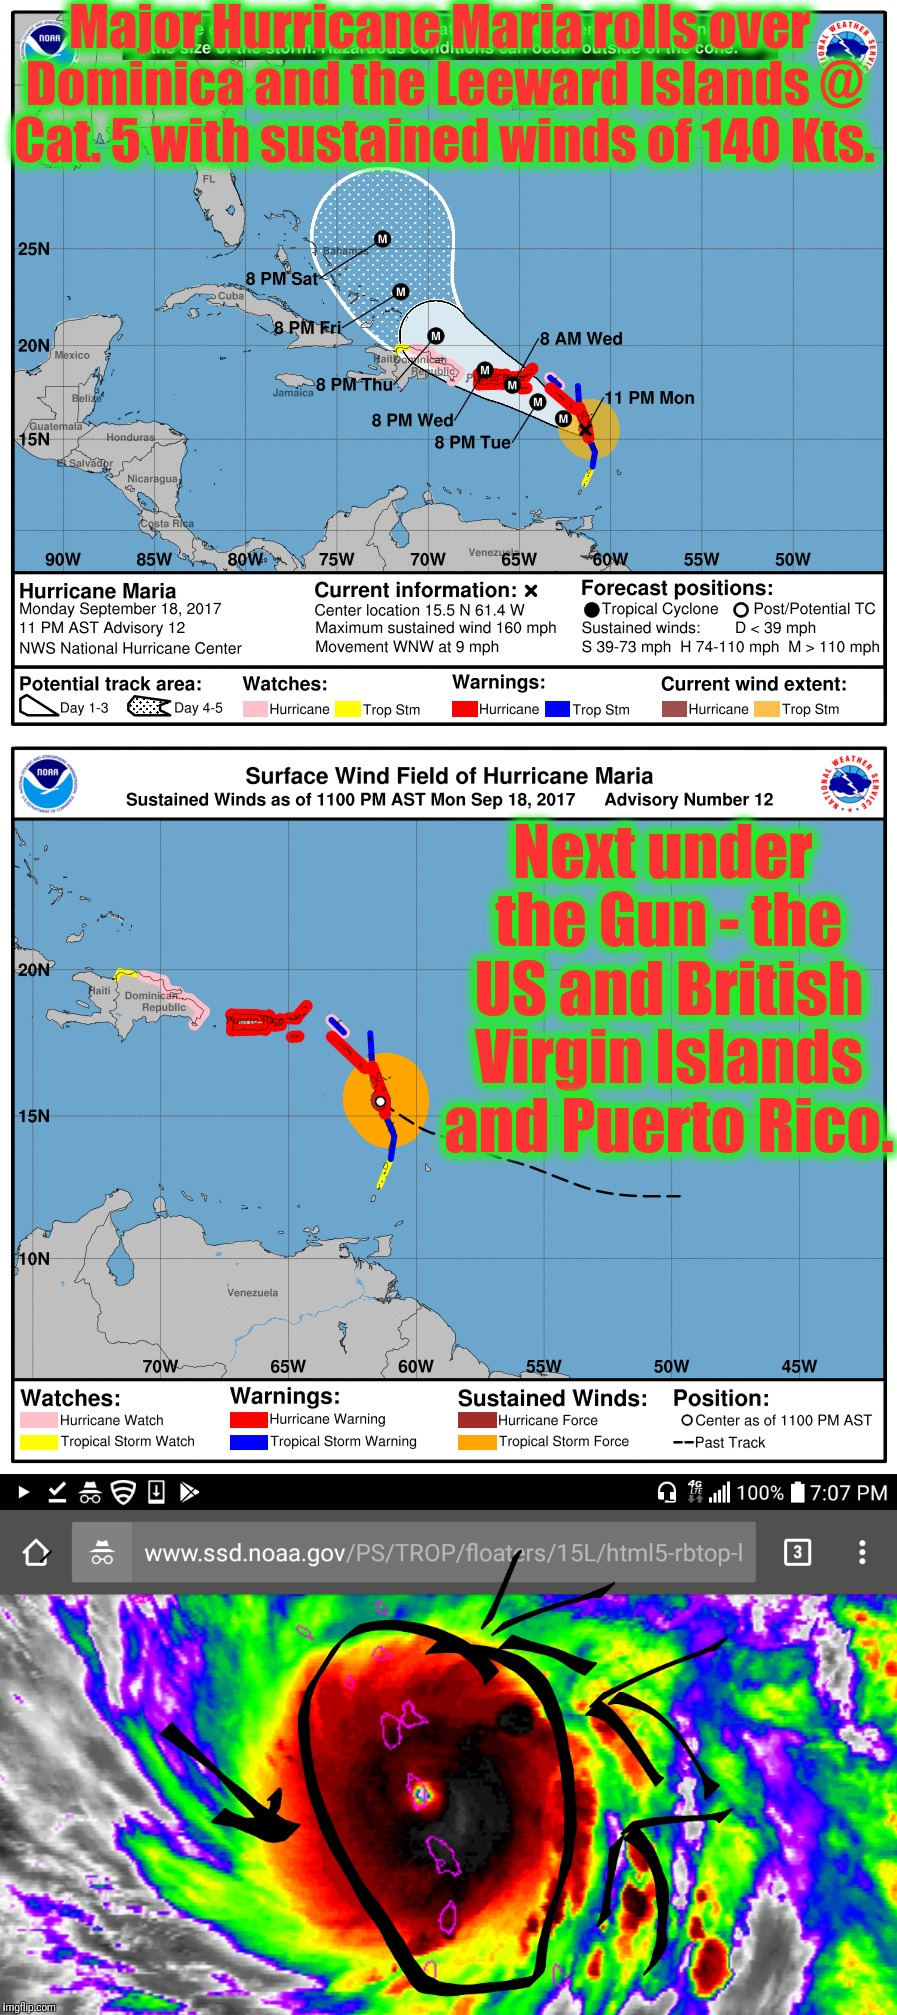 Major Hurricane Maria rolls over Dominica and the Leeward Islands @ Cat. 5 with sustained winds of 140 Kts. Next under the Gun - the US and  | made w/ Imgflip meme maker